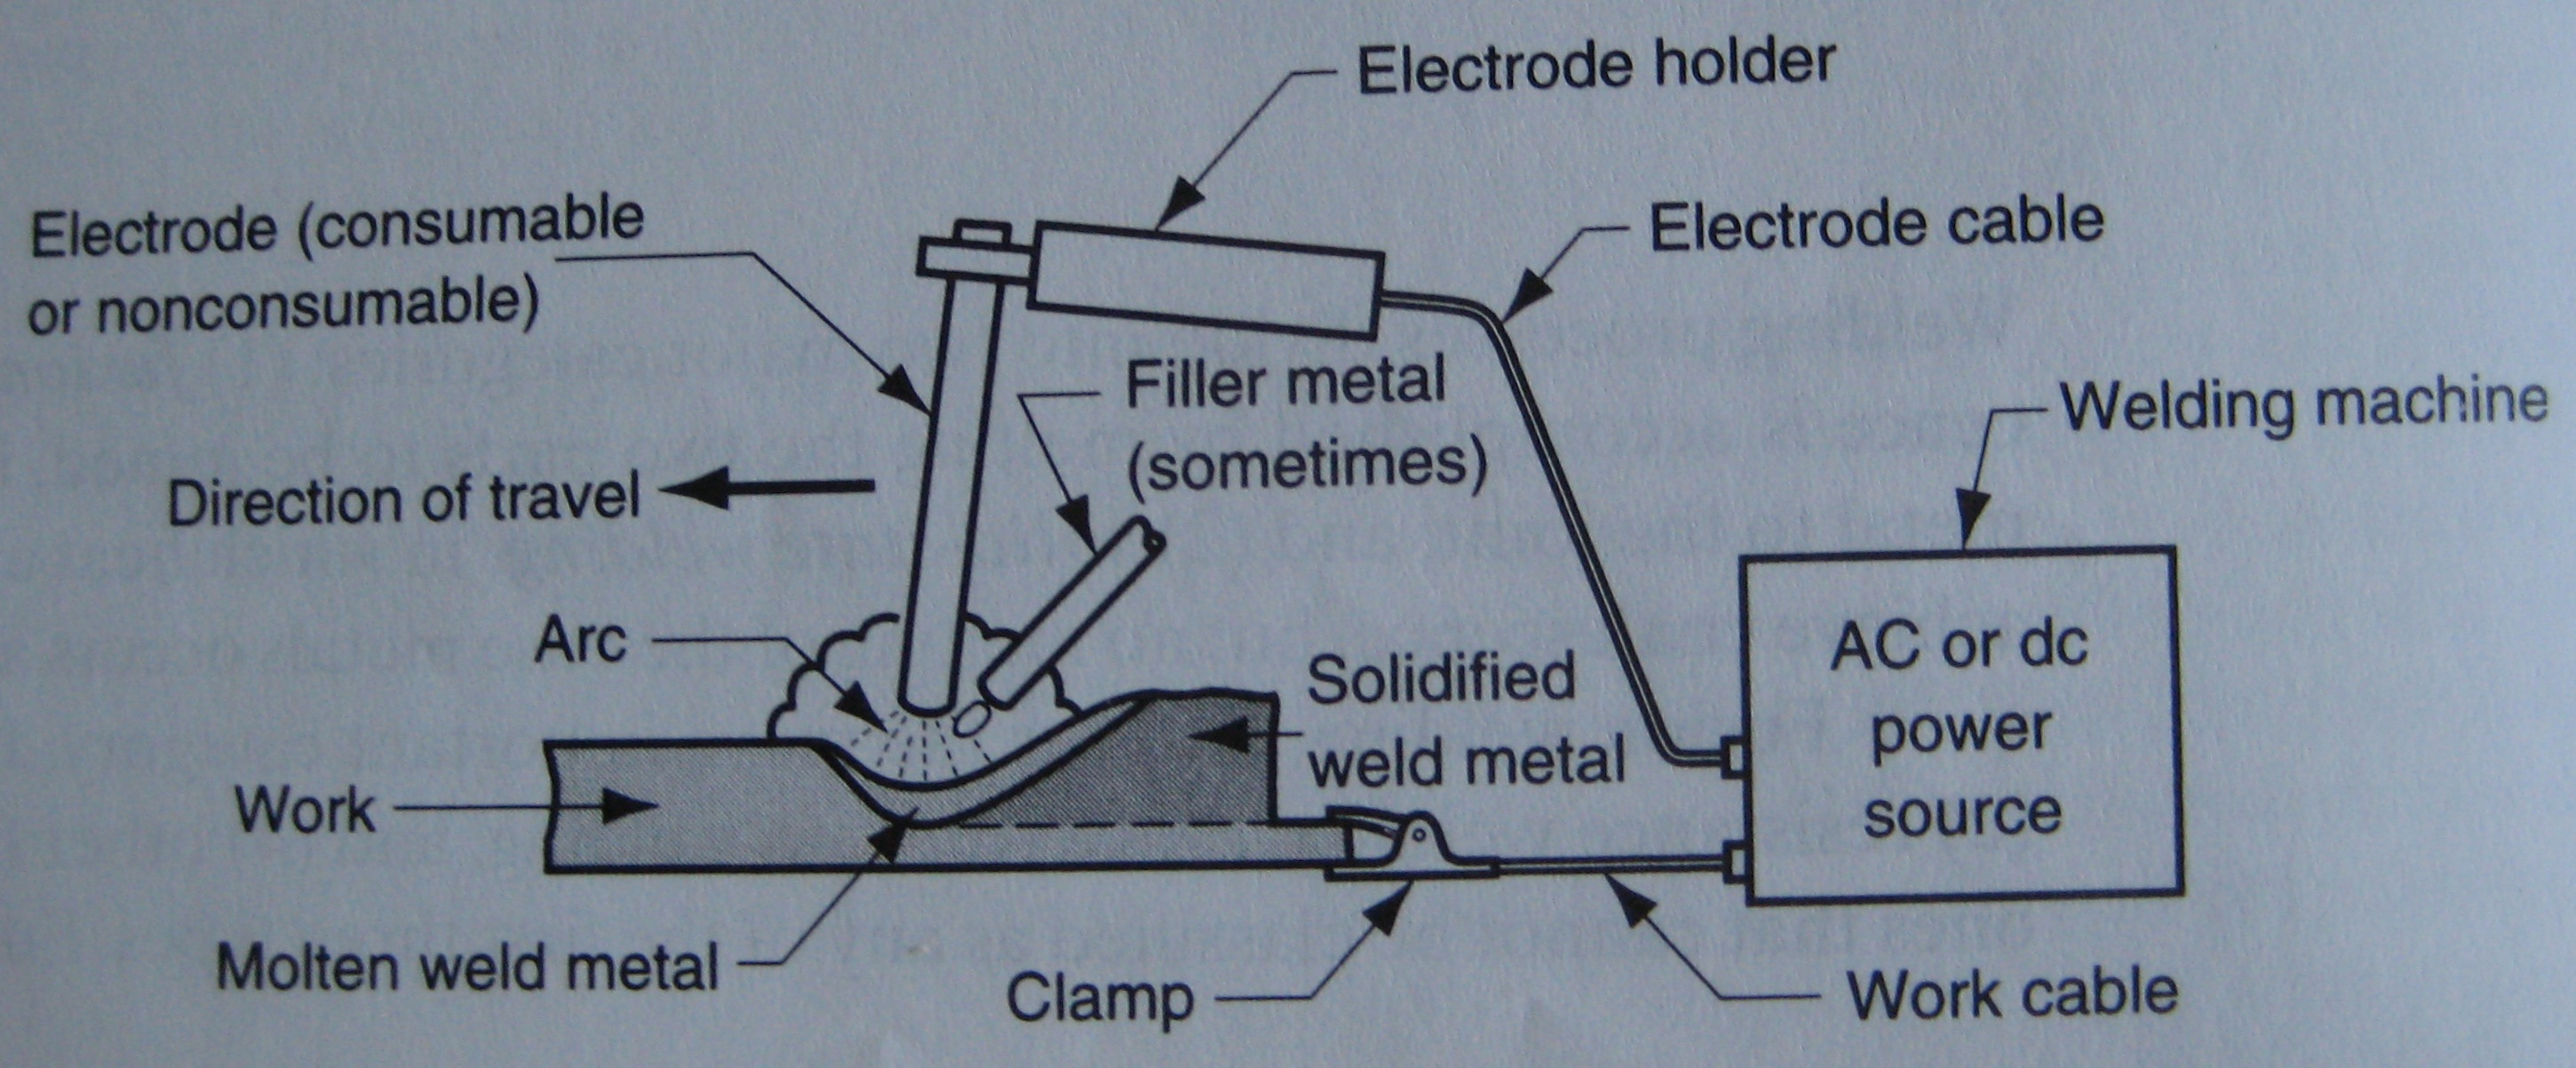 Welding | Valuable Mechanisms: The Design & Engineering Blog of ...